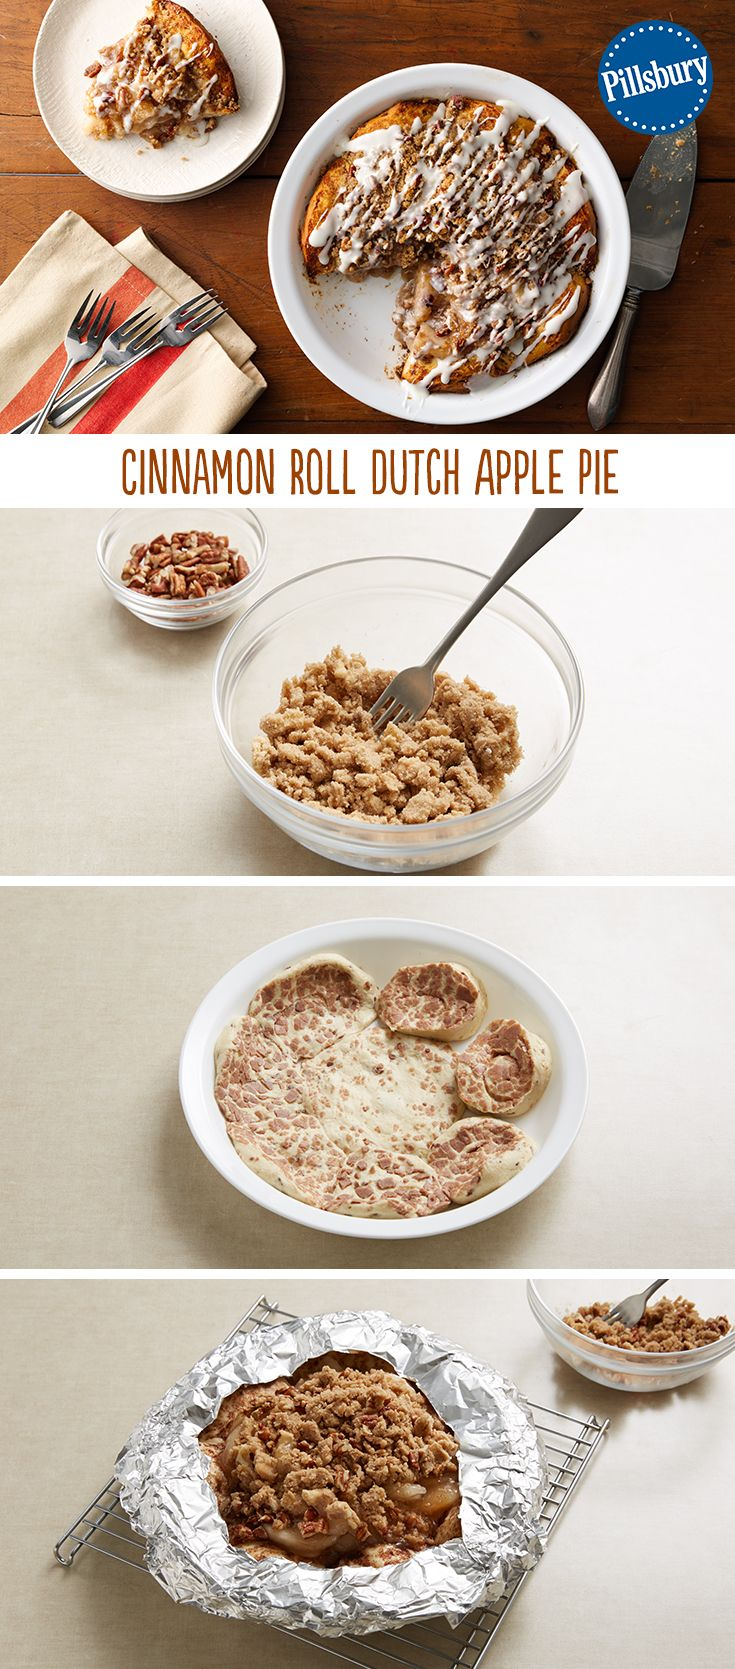 An apple pie with a cinnamon roll crust? Yes, please! Can be served as a dessert or for an extra special brunch, should you wish! You'll love this easy to make Cinnamon Roll Dutch Apple Pie recipe for the holidays.